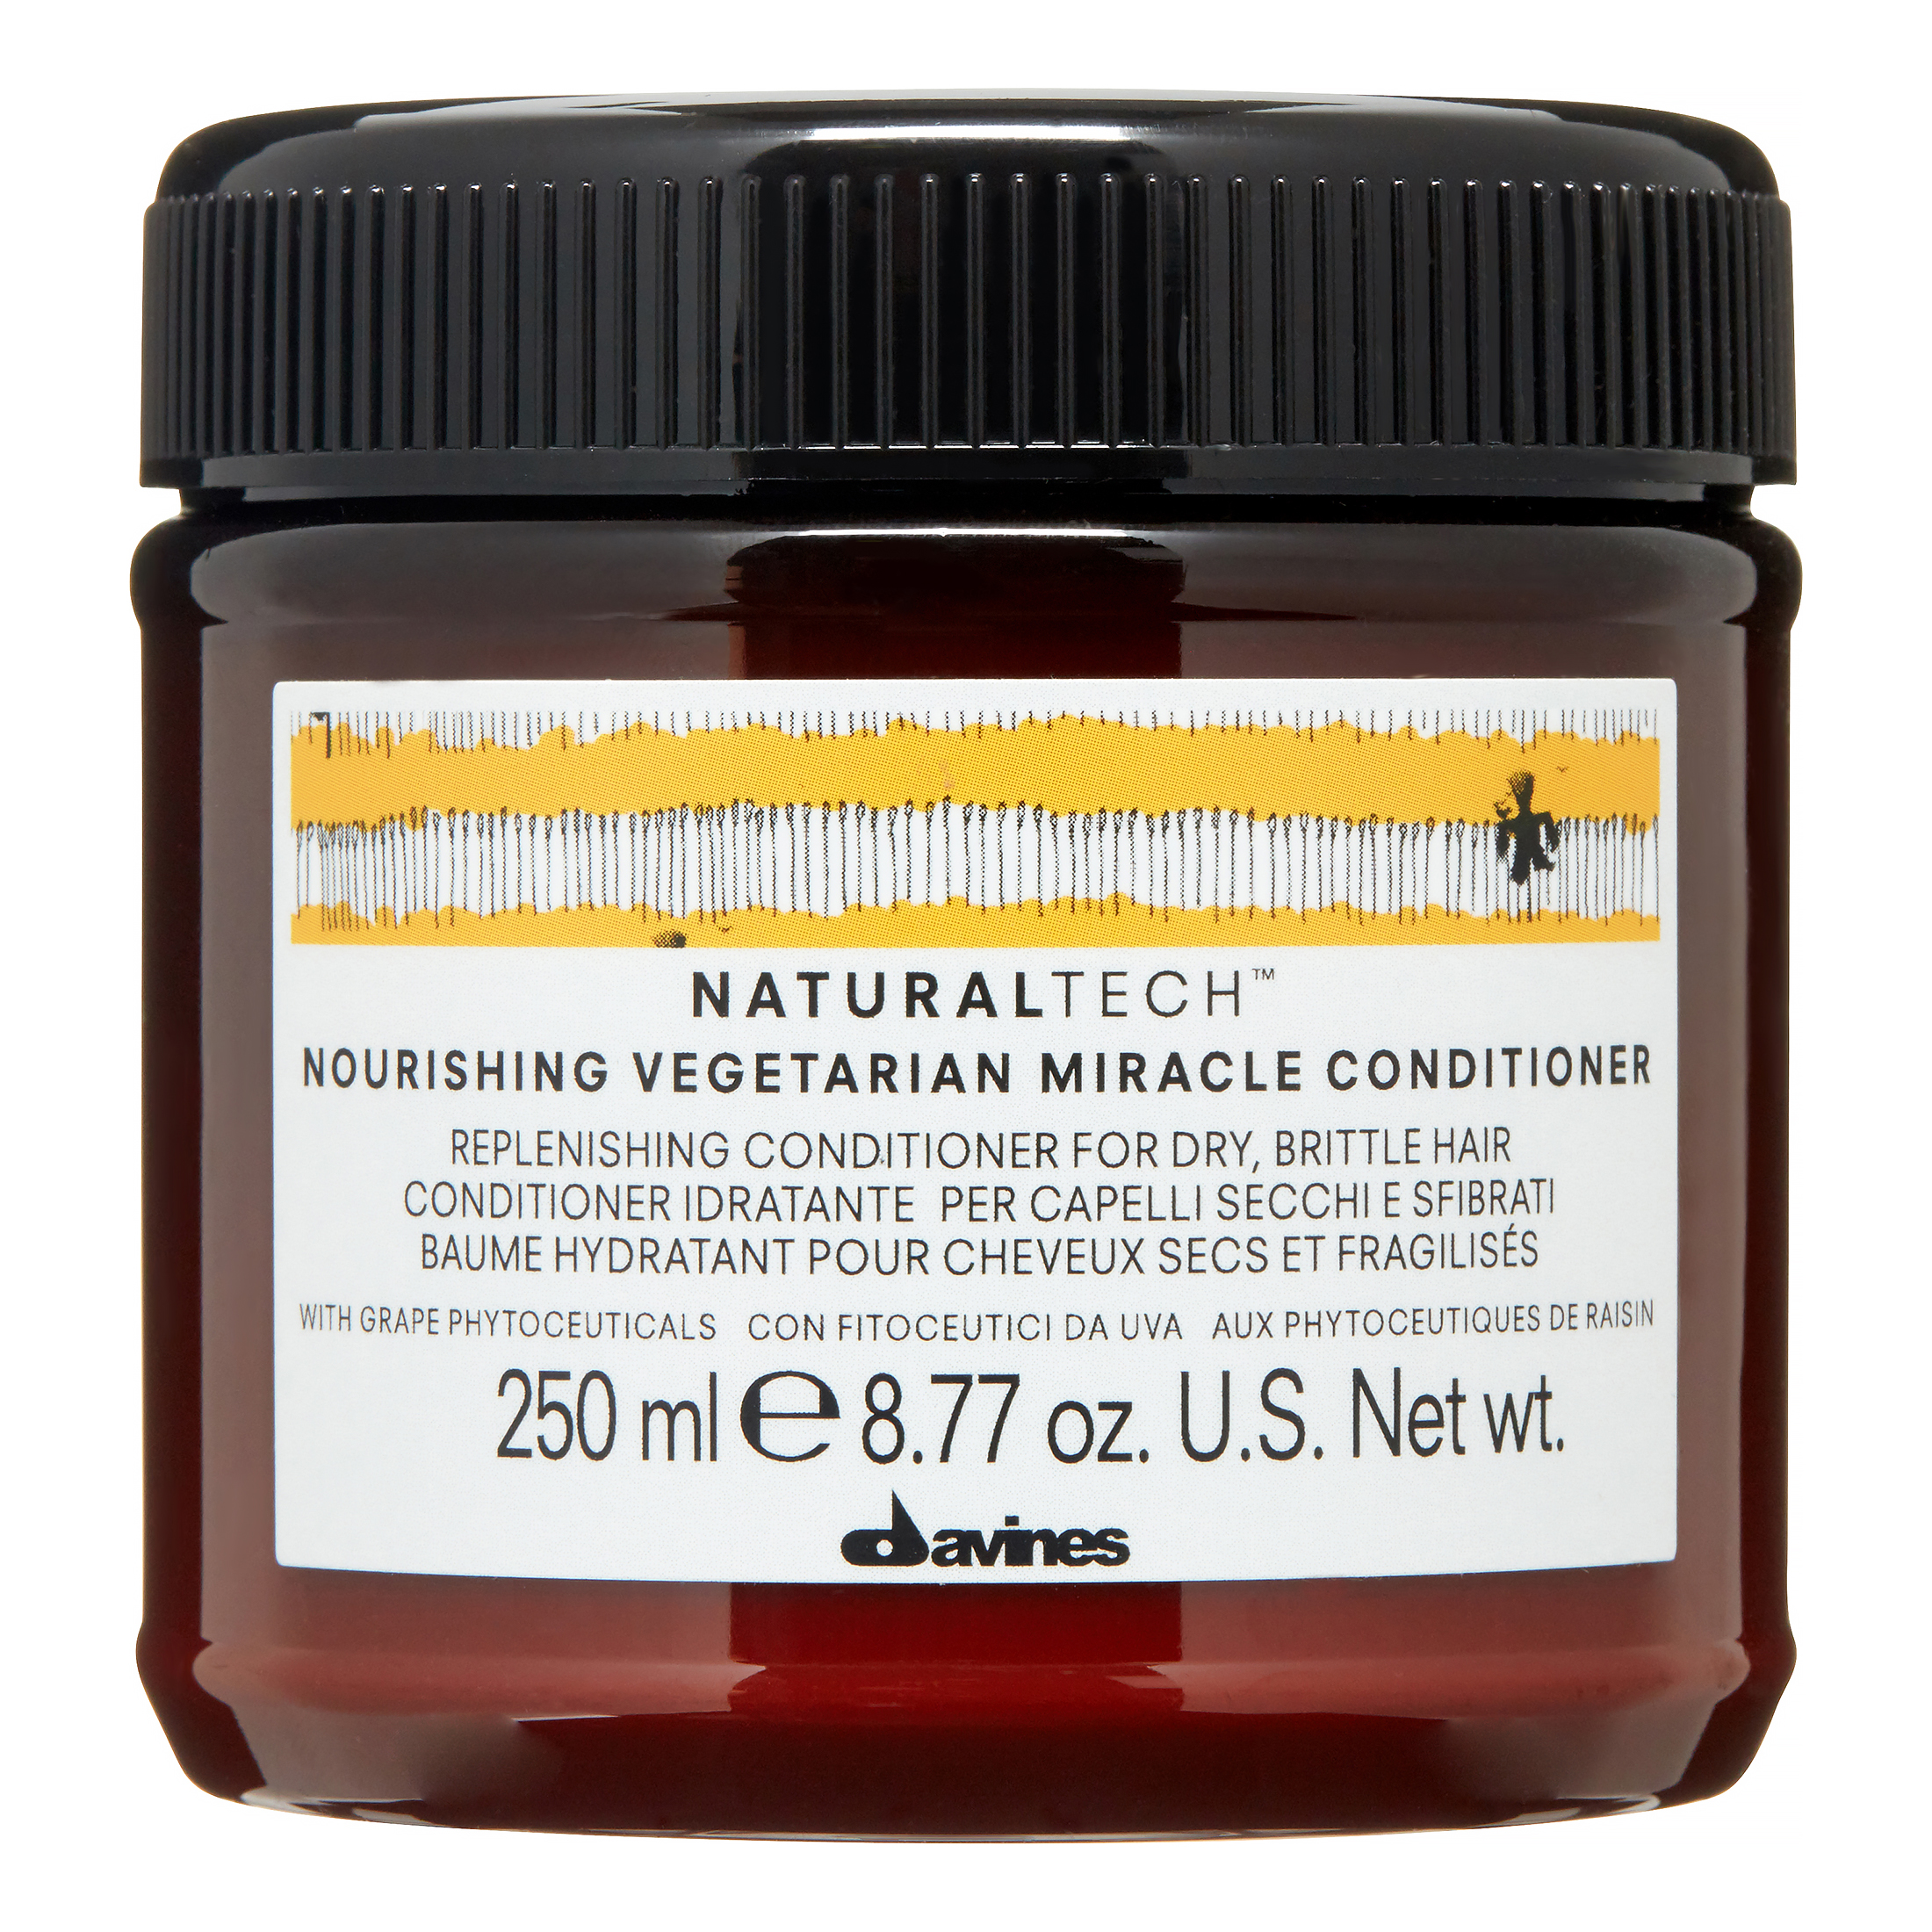 Davines Naturaltech Nourishing Vegetarian Miracle Conditioner, 8.77 Oz